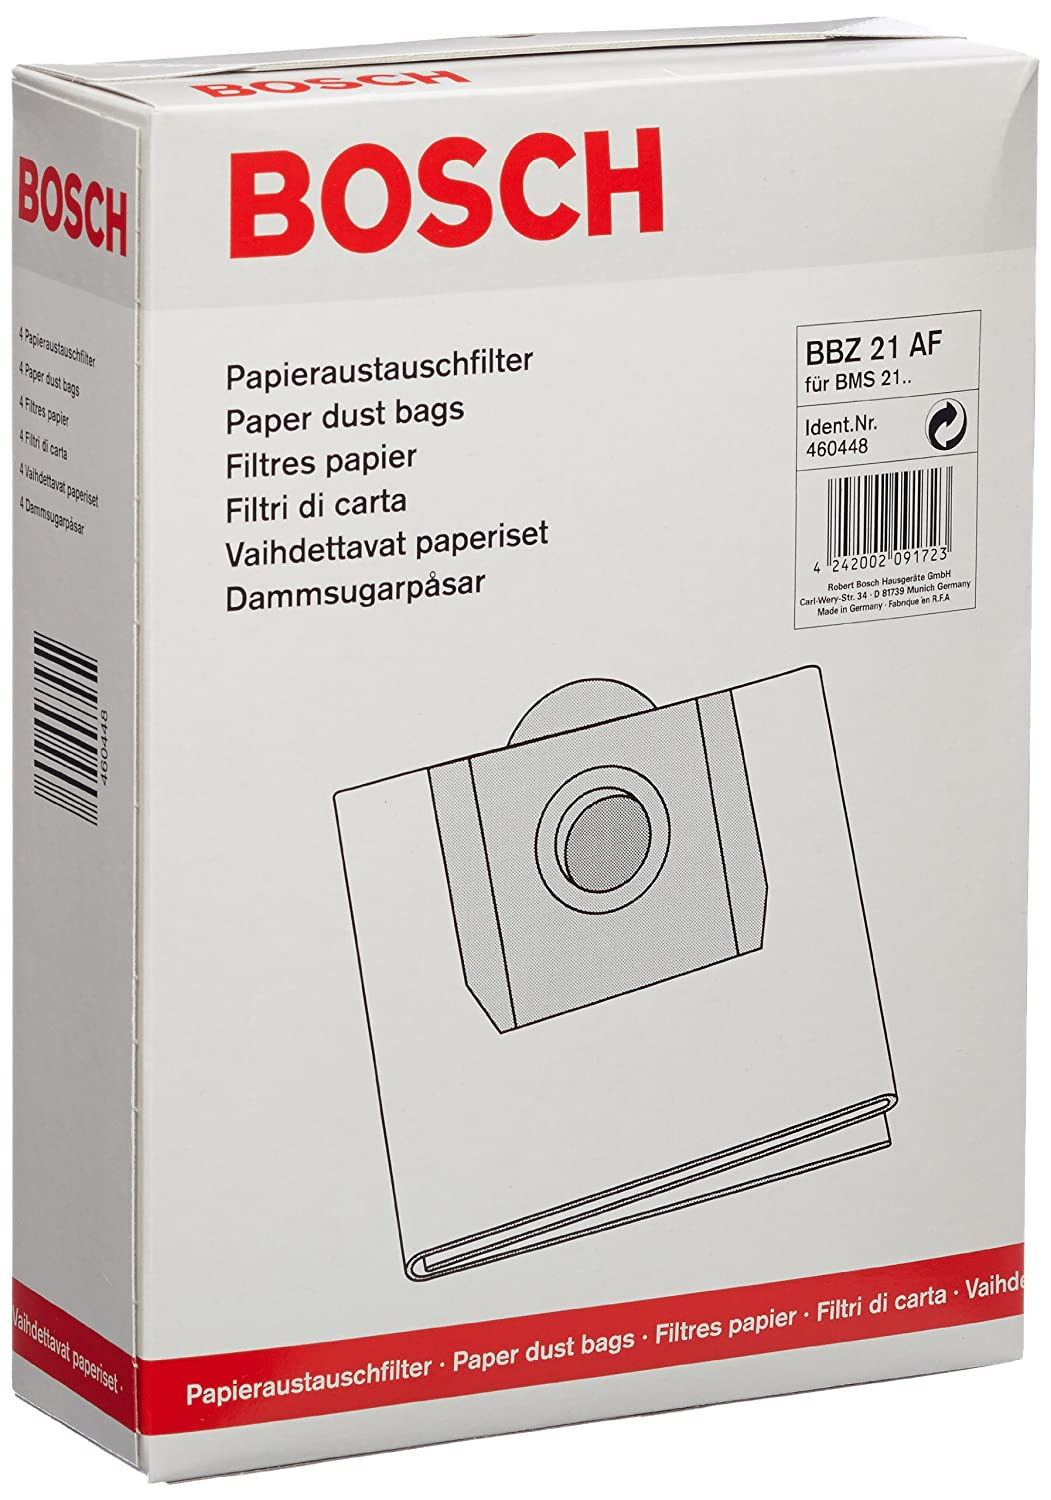 Bosch Bbz21af Paper Vacuum Cleaner Filters For Sou Amazon Co Uk